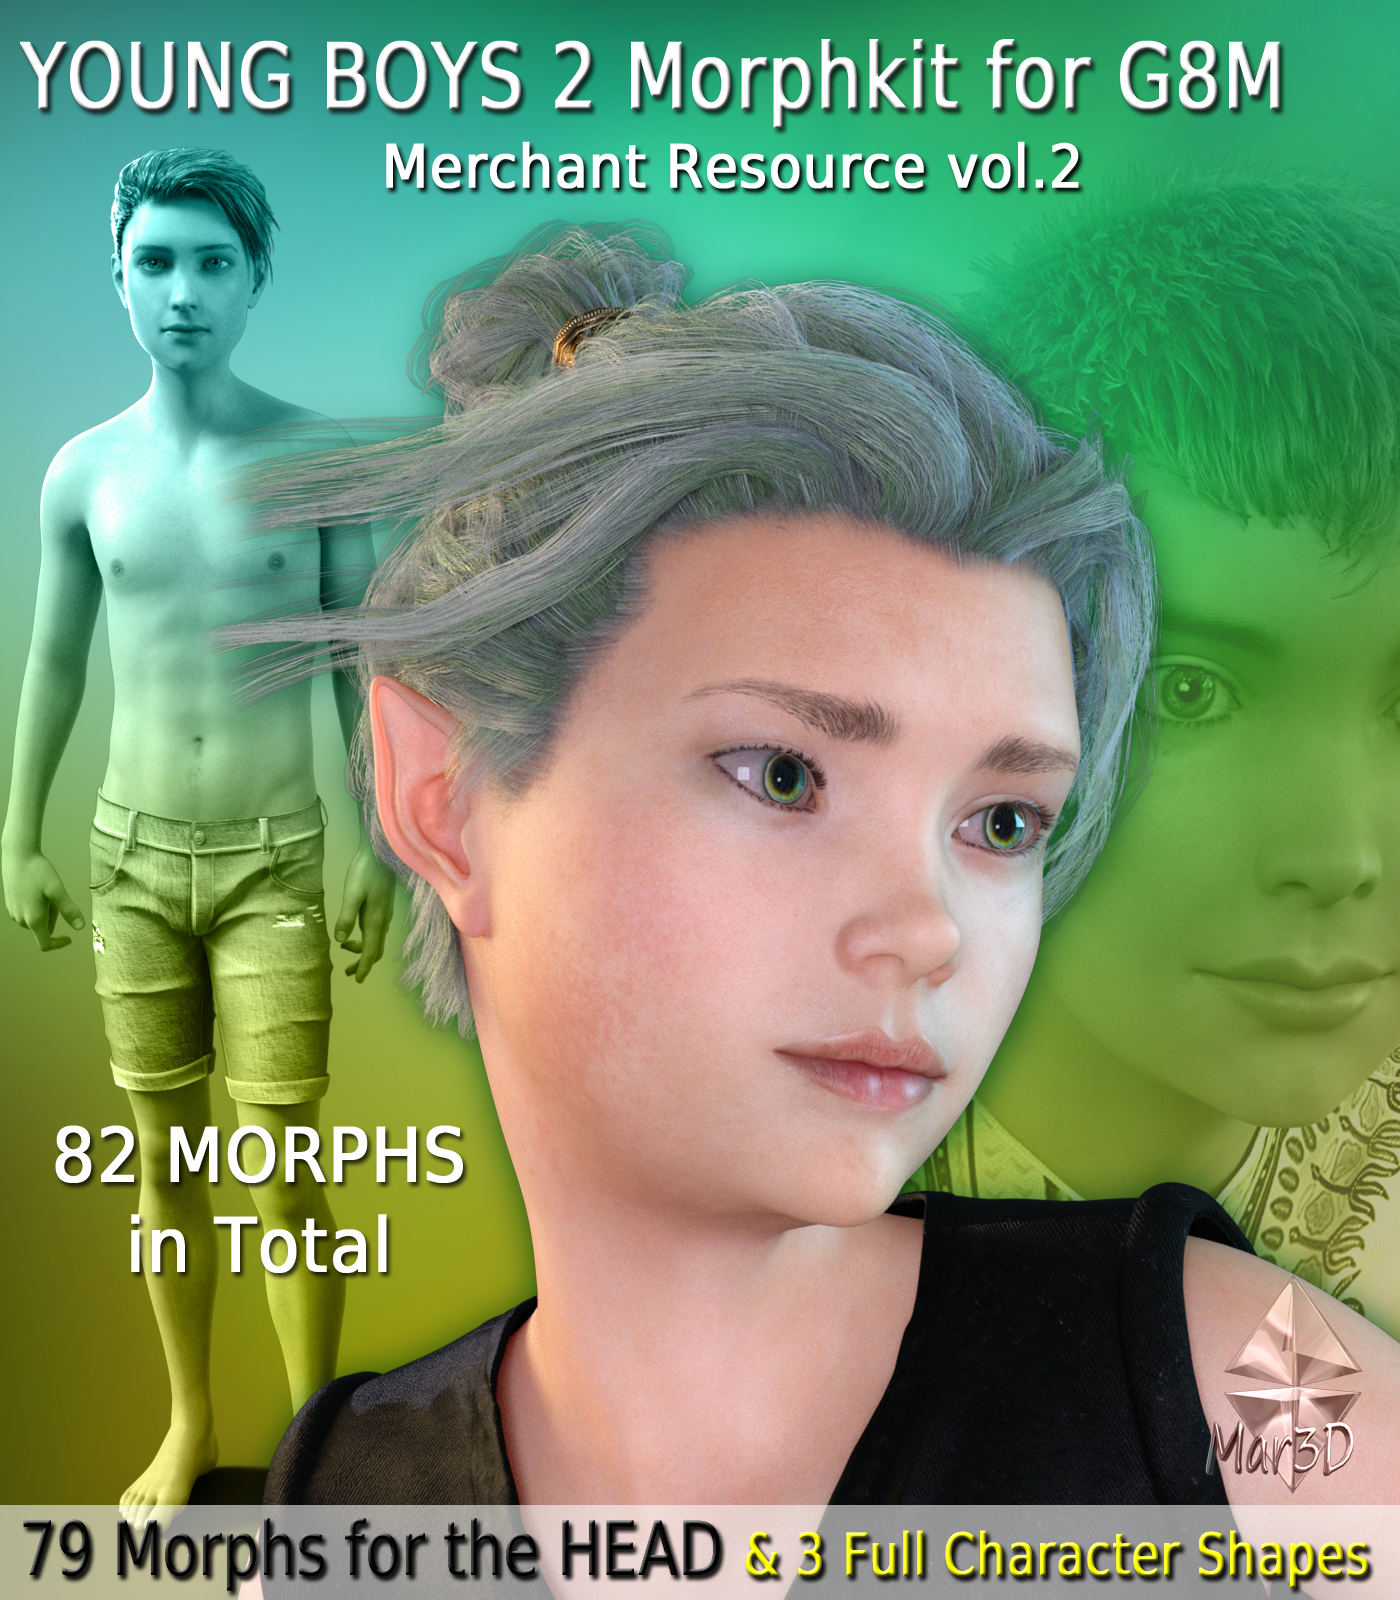 Young Boys 2 Morphkit for G8M - Merchant Resource 2